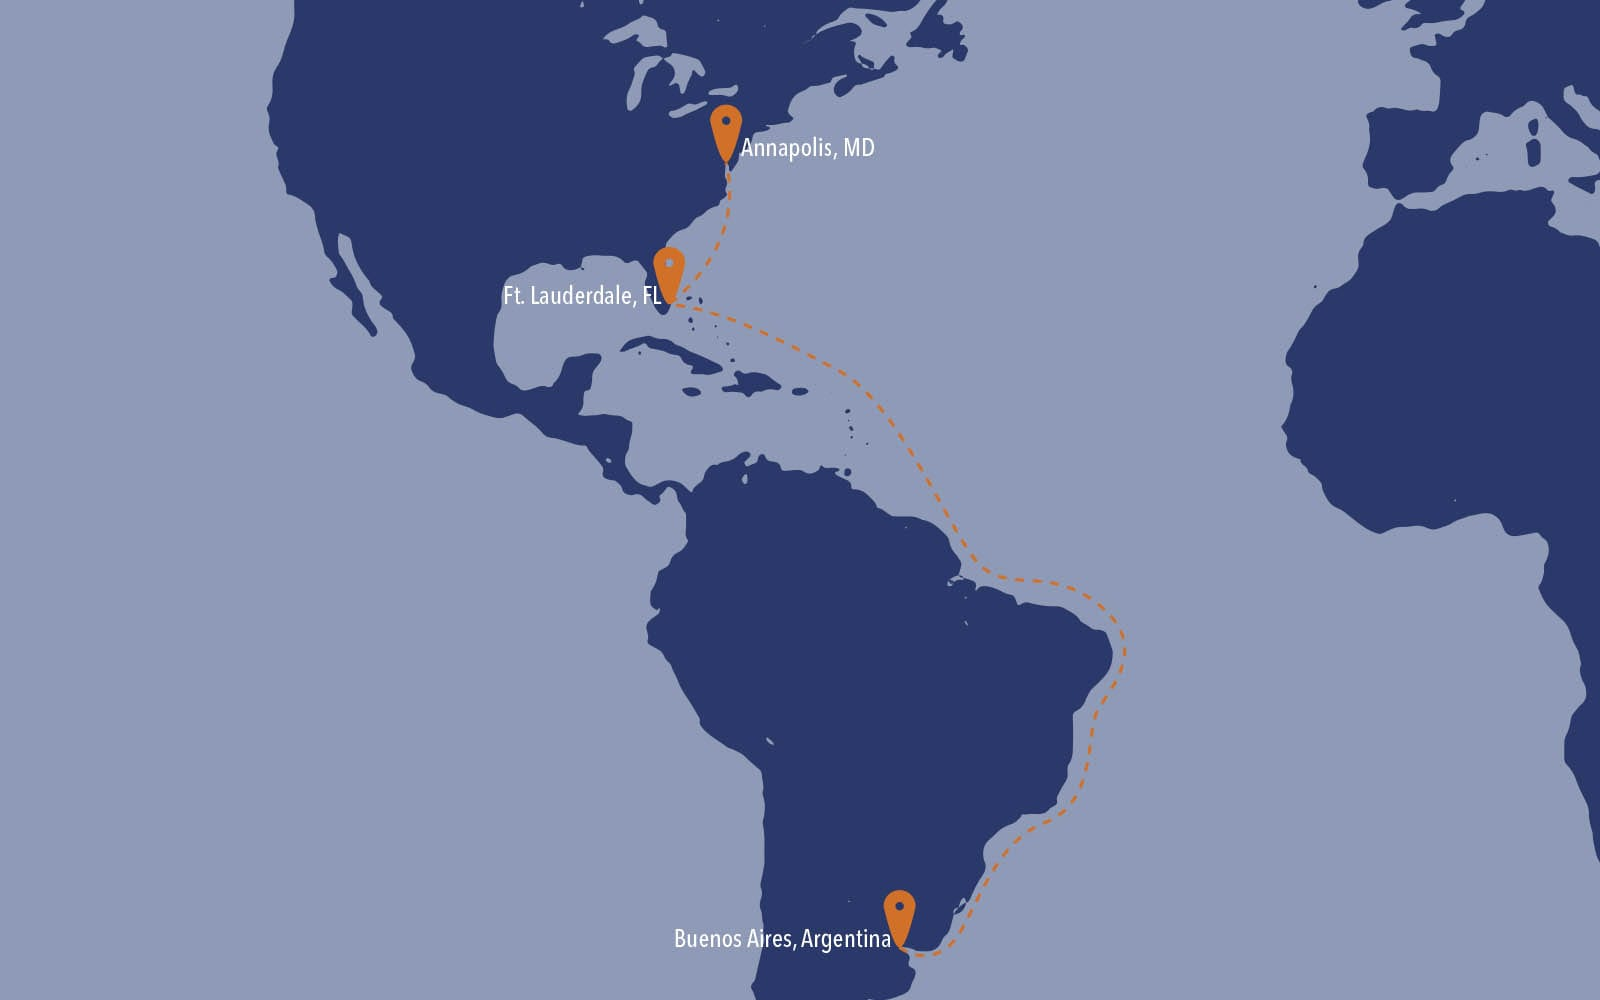 Course of Seahorse as it journeys from Argentina to Miami